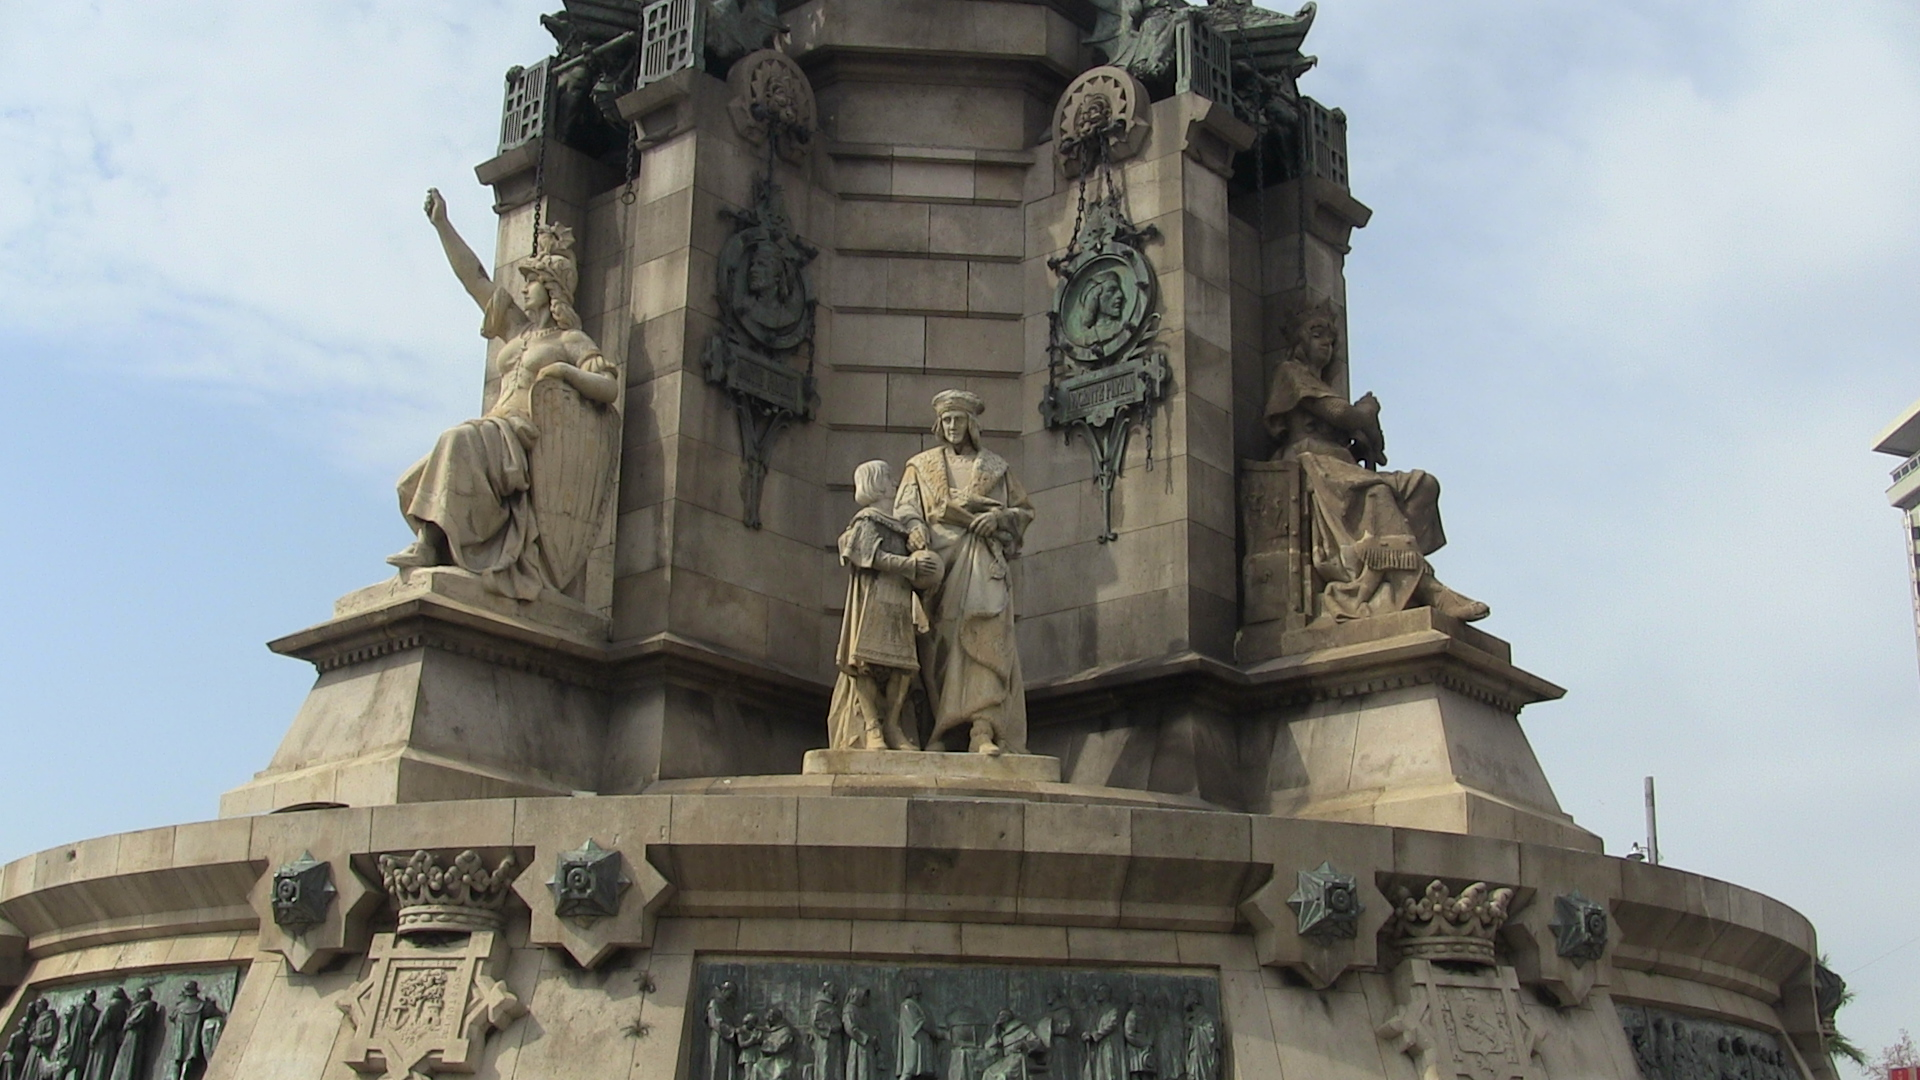 Columbus Monument, Barcelona, Spain